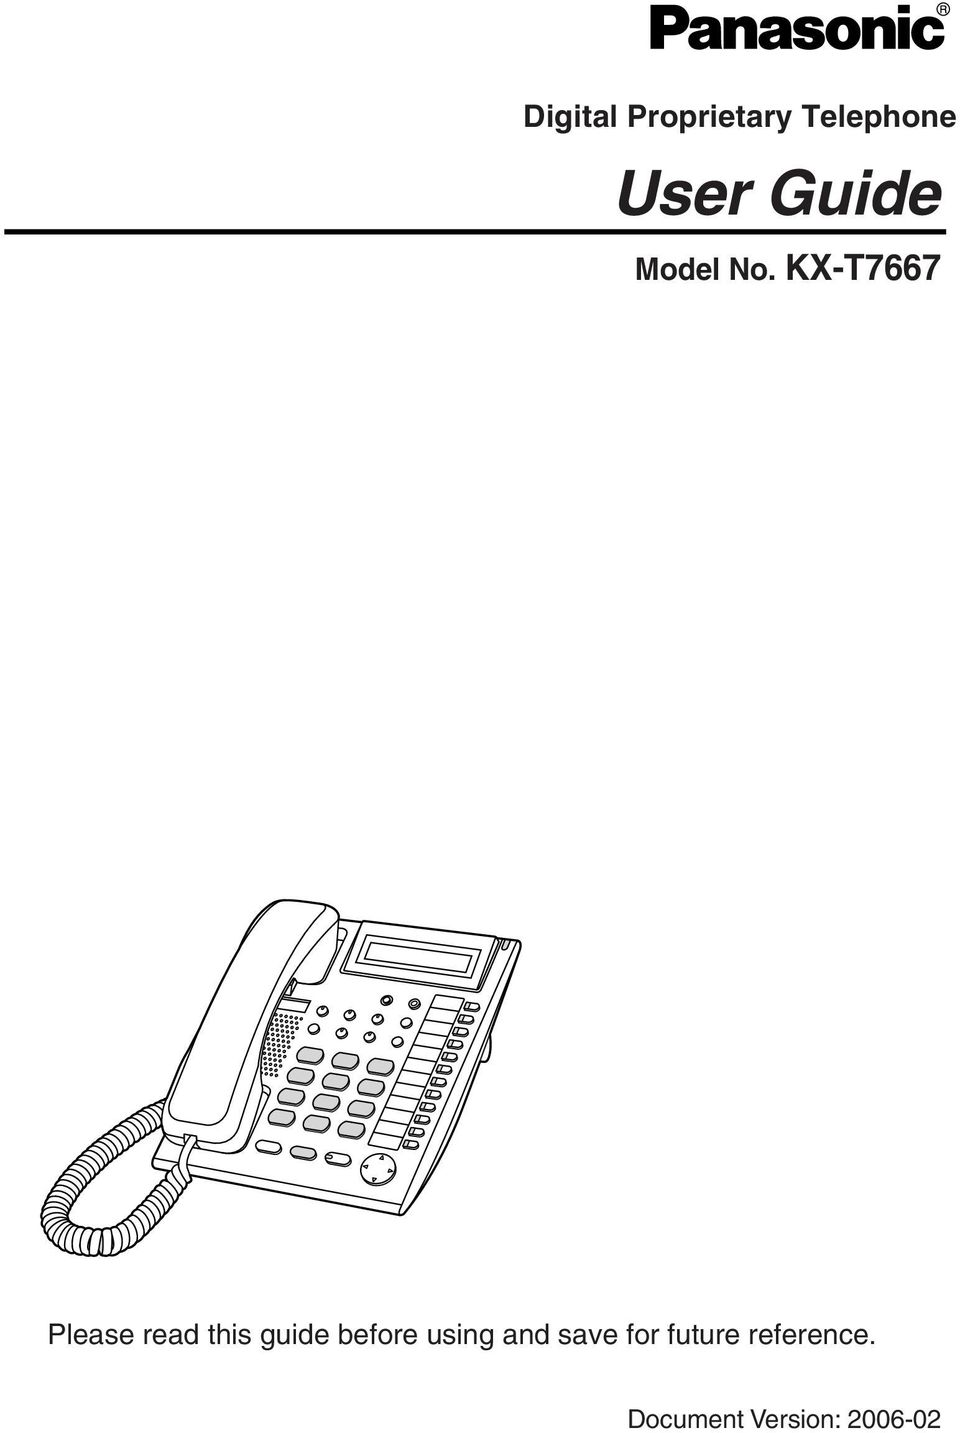 User Guide Digital Proprietary Telephone Model No Kx T7667 Please Read This Guide Before Using And Save For Future Reference Pdf Free Download